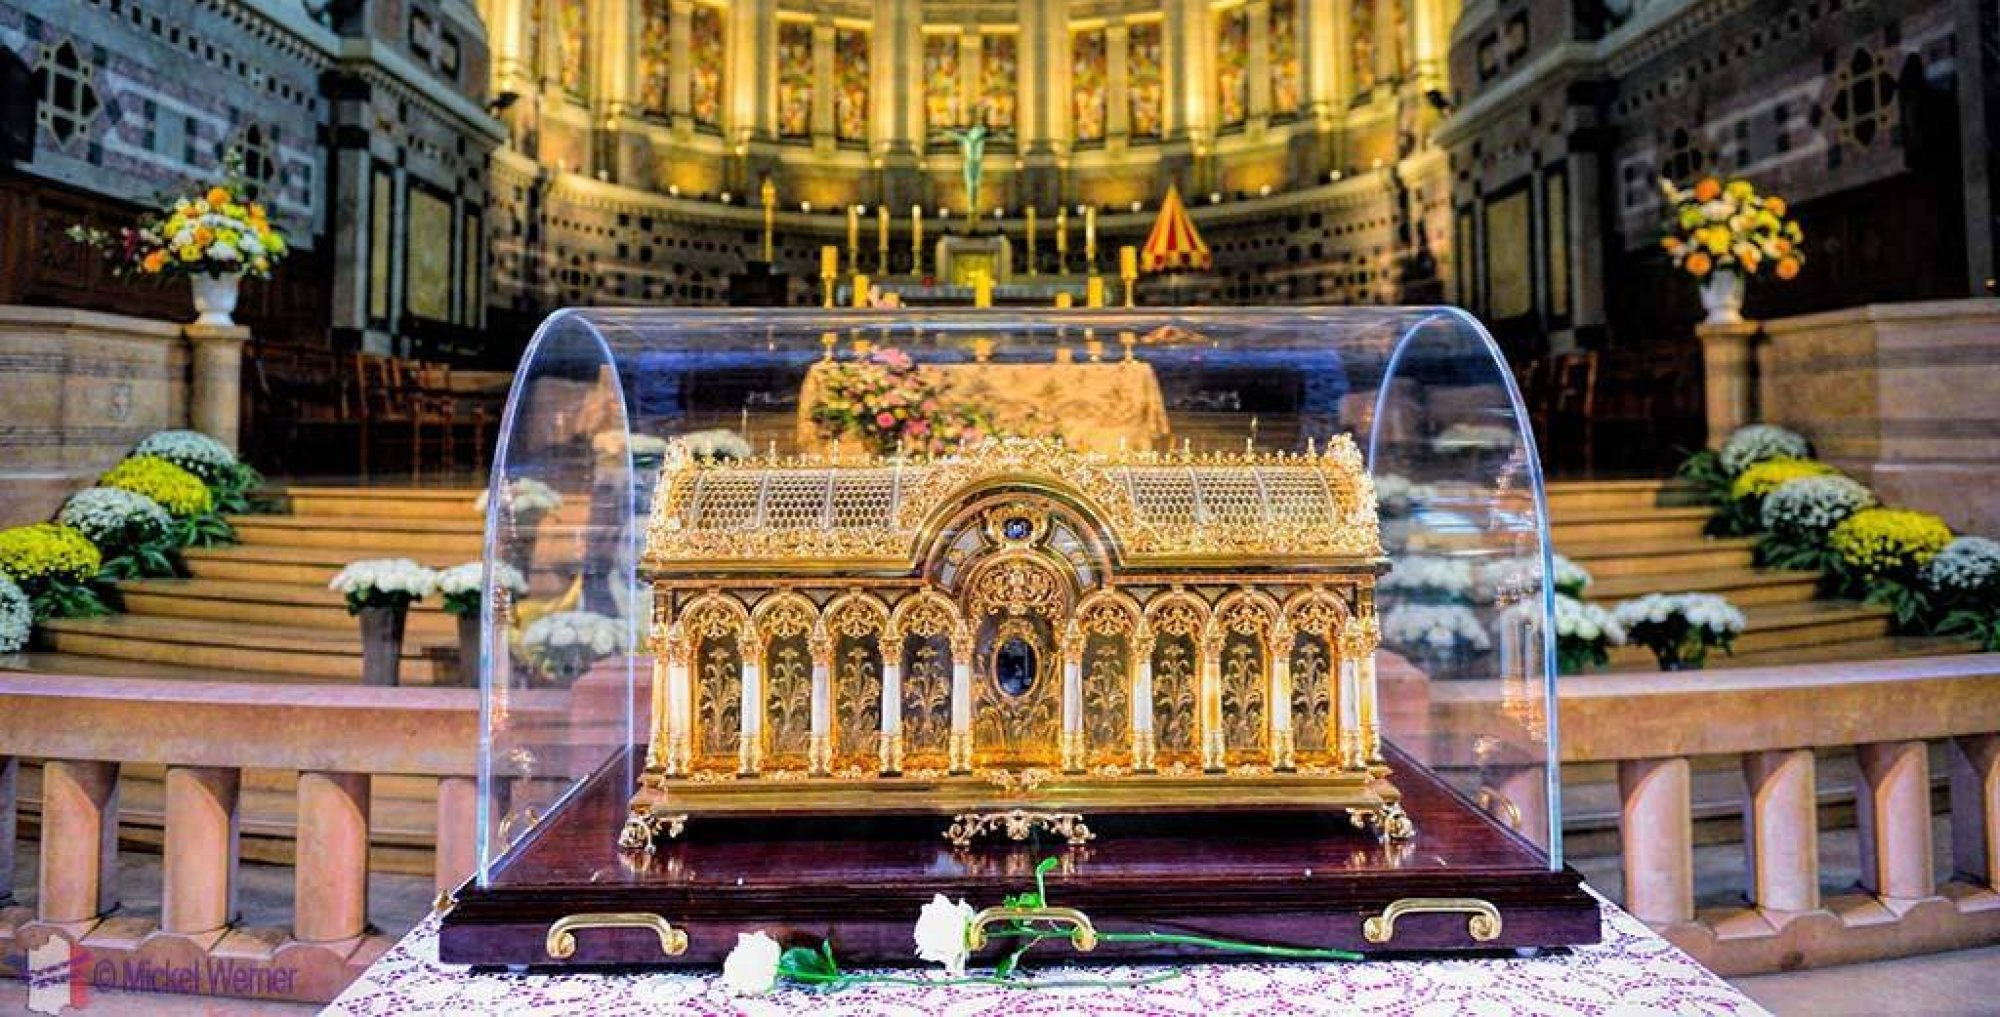 Relics of St Thérèse to visit